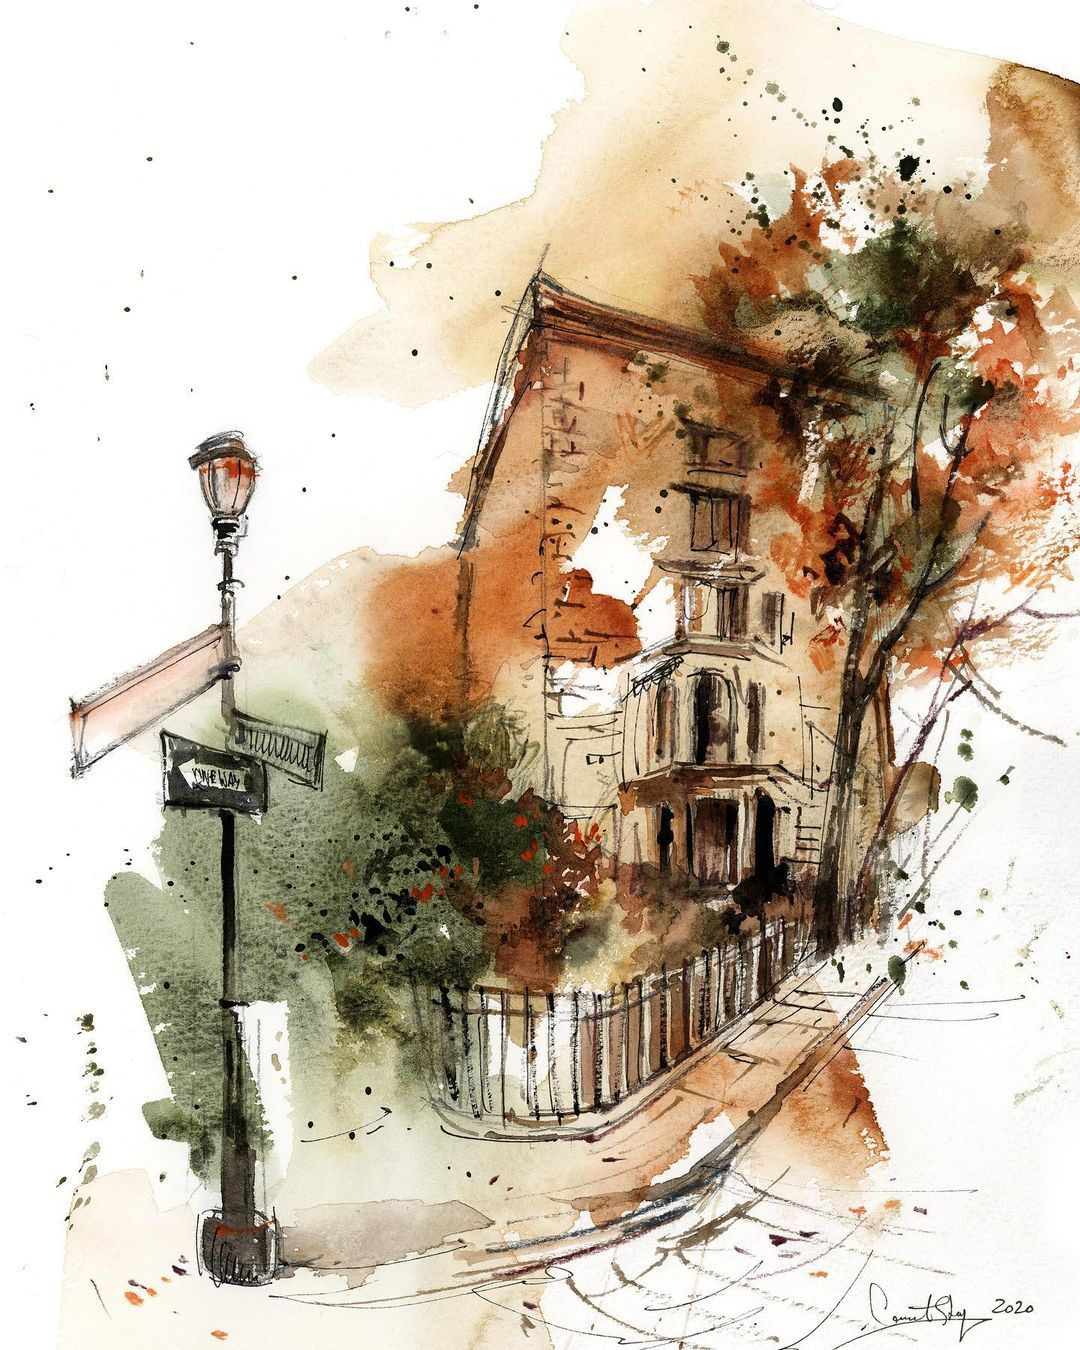 "Sophie Artist on Instagram: ""Fall colors My new love - architecture sketches #danielsmithwatercolors #canotstoppainting #canotstop_prints #aquarellepainting…"""